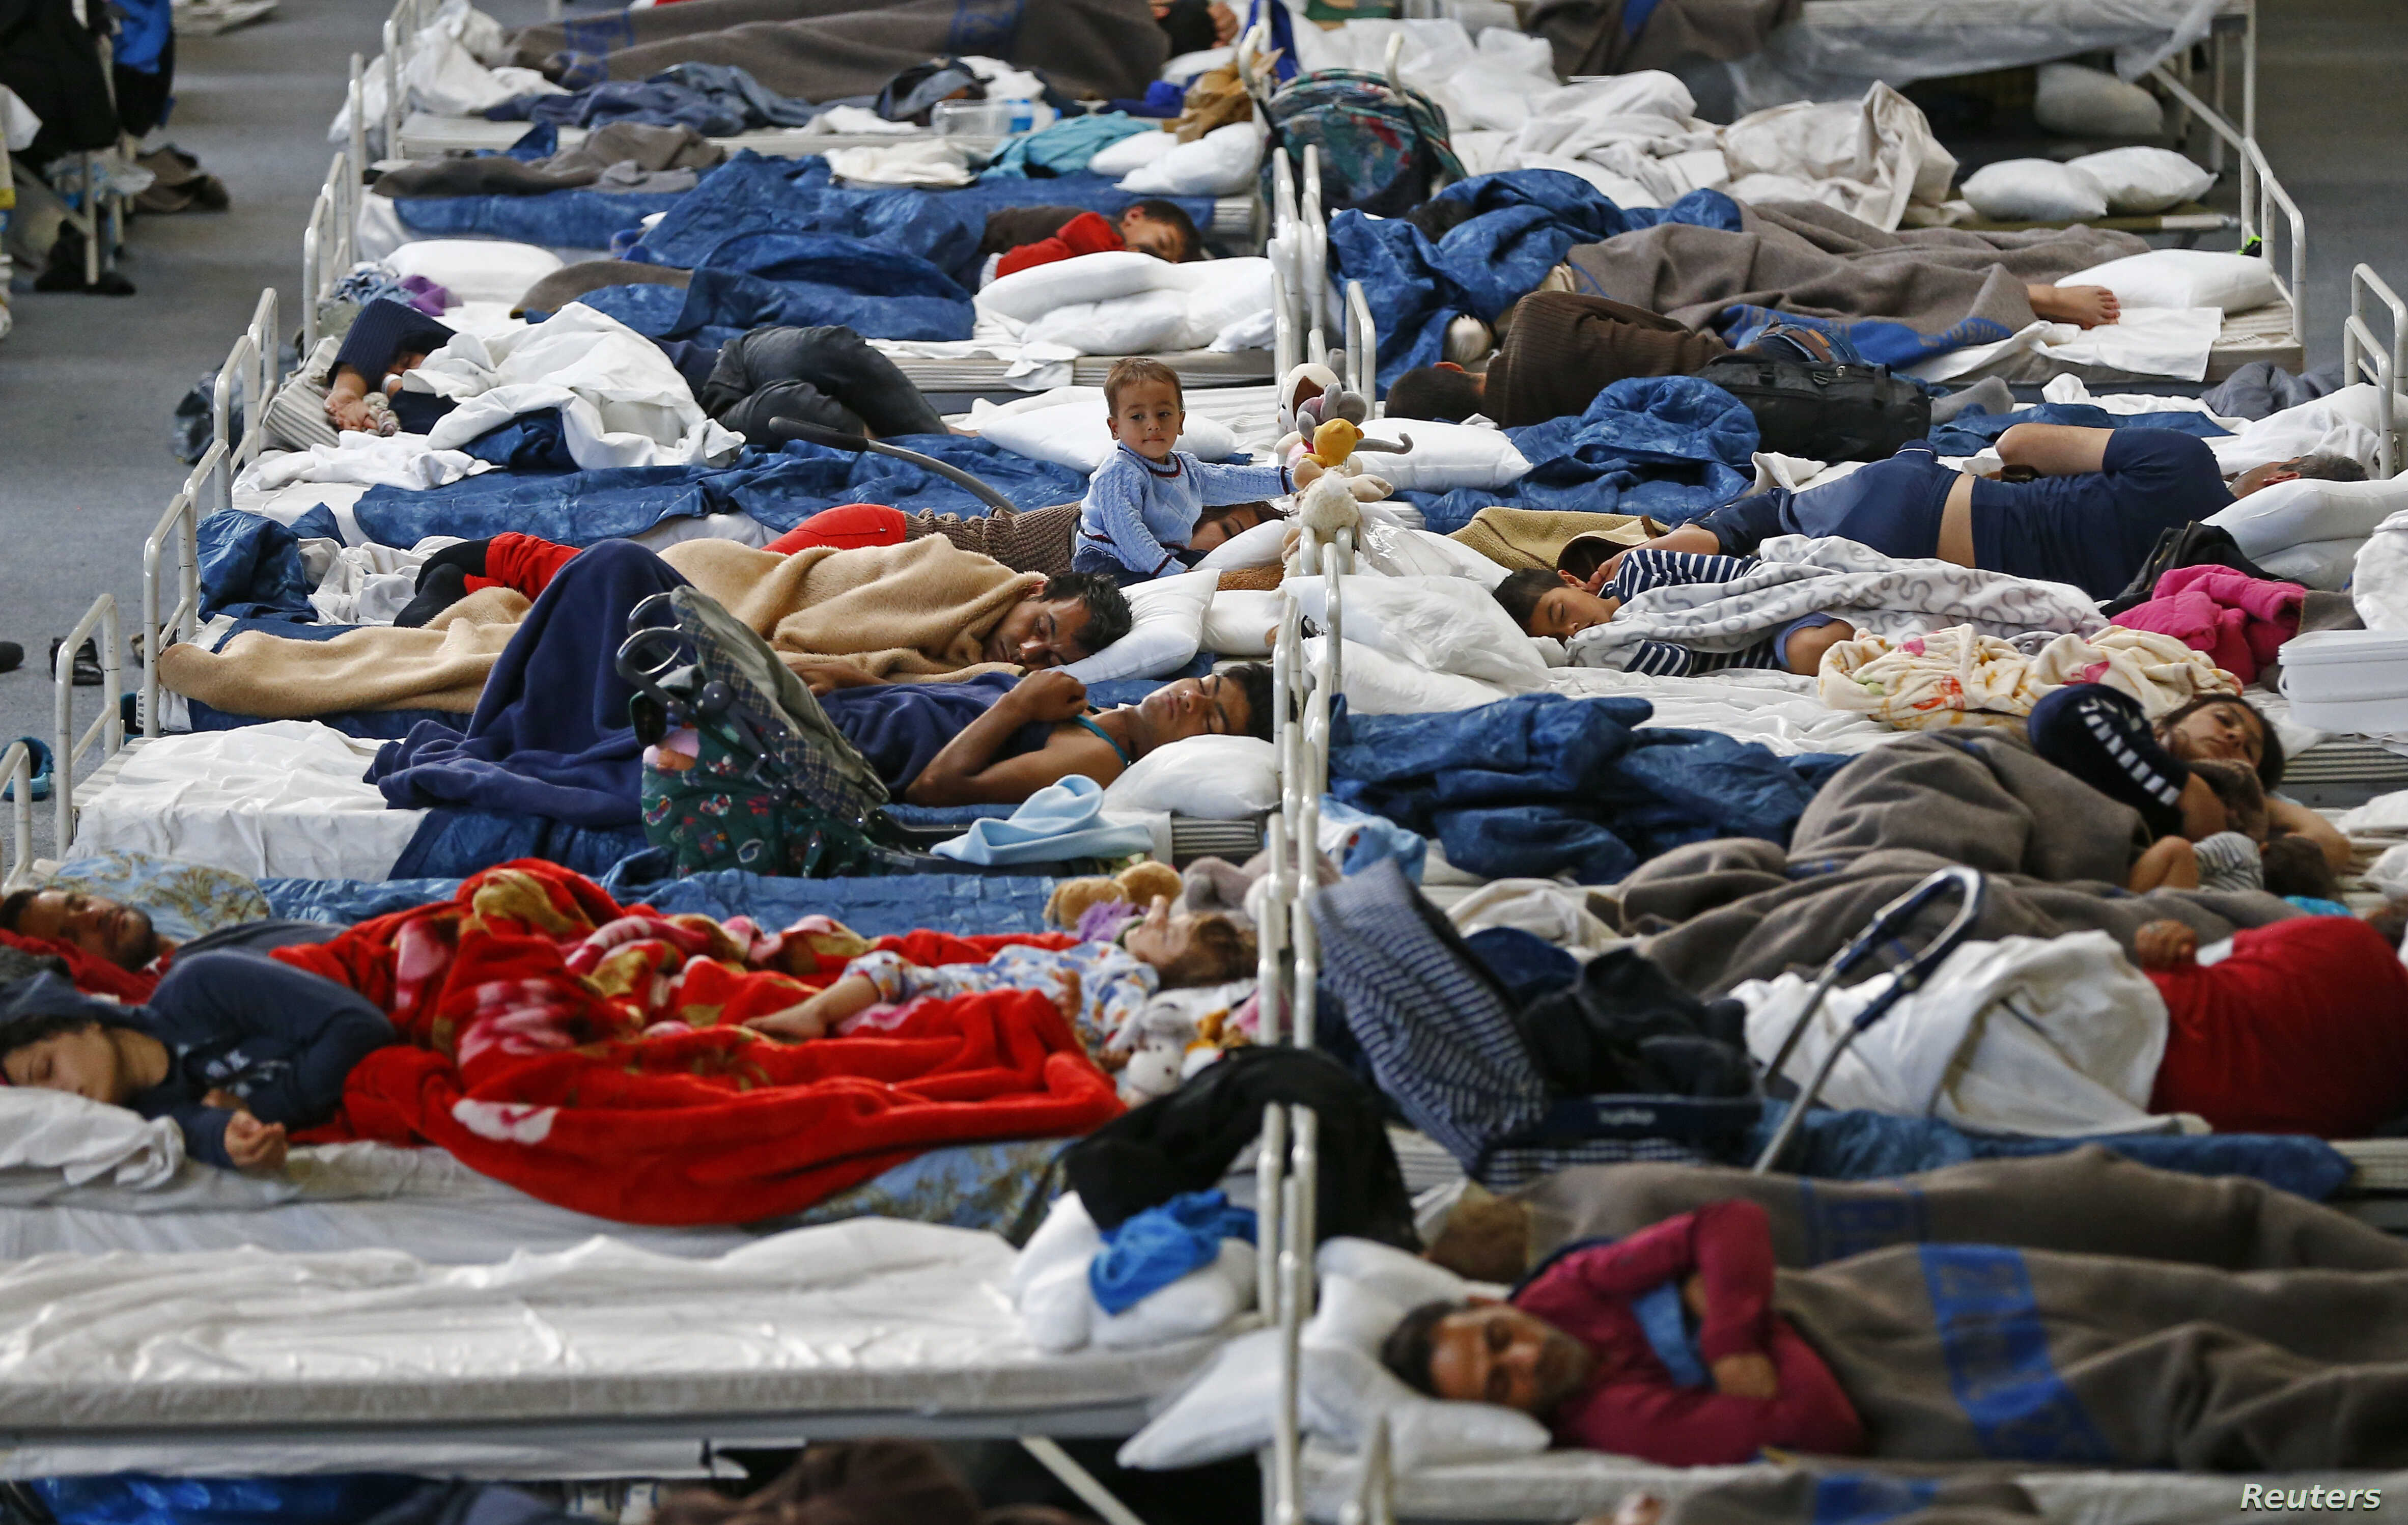 Migrants rest on beds at an improvised temporary shelter in a sports hall in Hanau, Germany, Sept. 22, 2015.